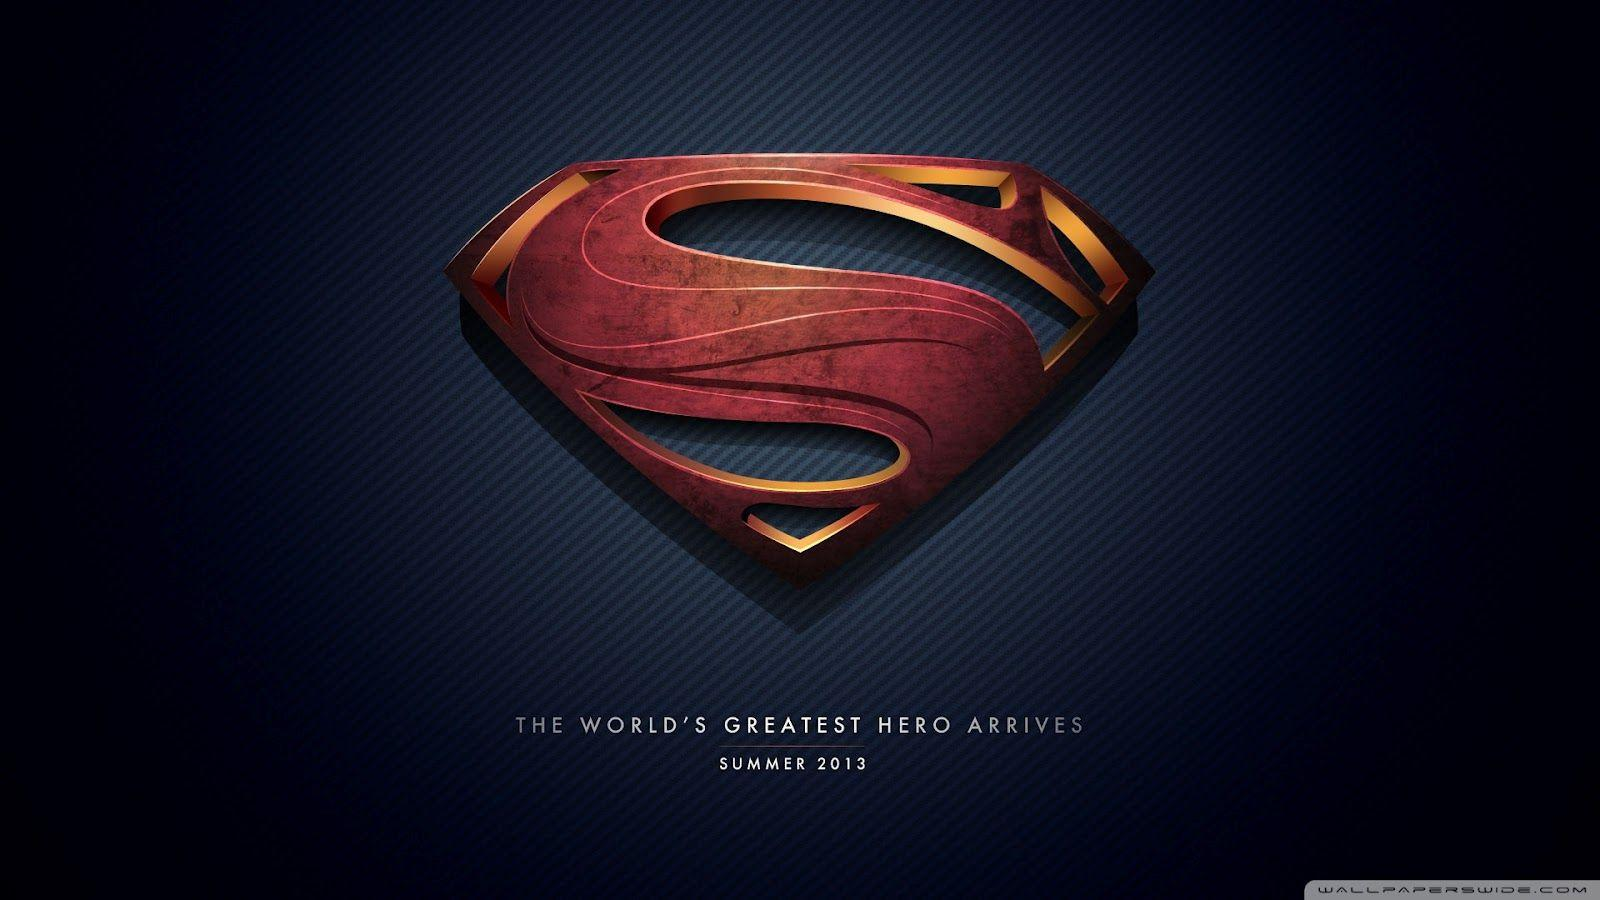 New Superman Logo Hd Images & Pictures - Becuo